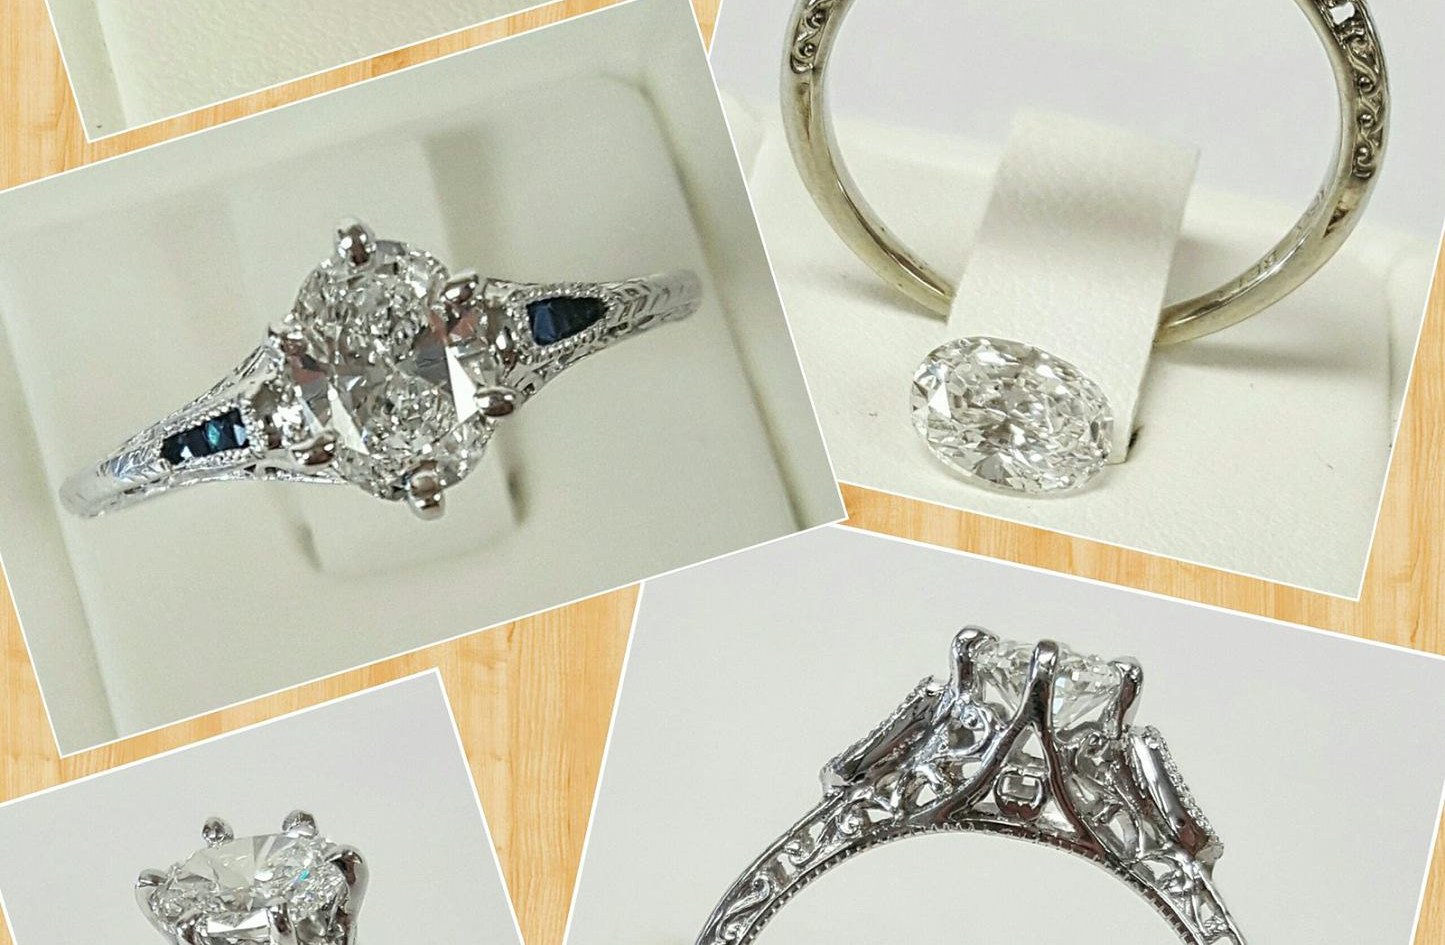 This ring was quite the project from start to finish! Harry had to completely reshape the center crown to fit the Diamond in the opposite direction. The customer was amazed with the result and so very happy!